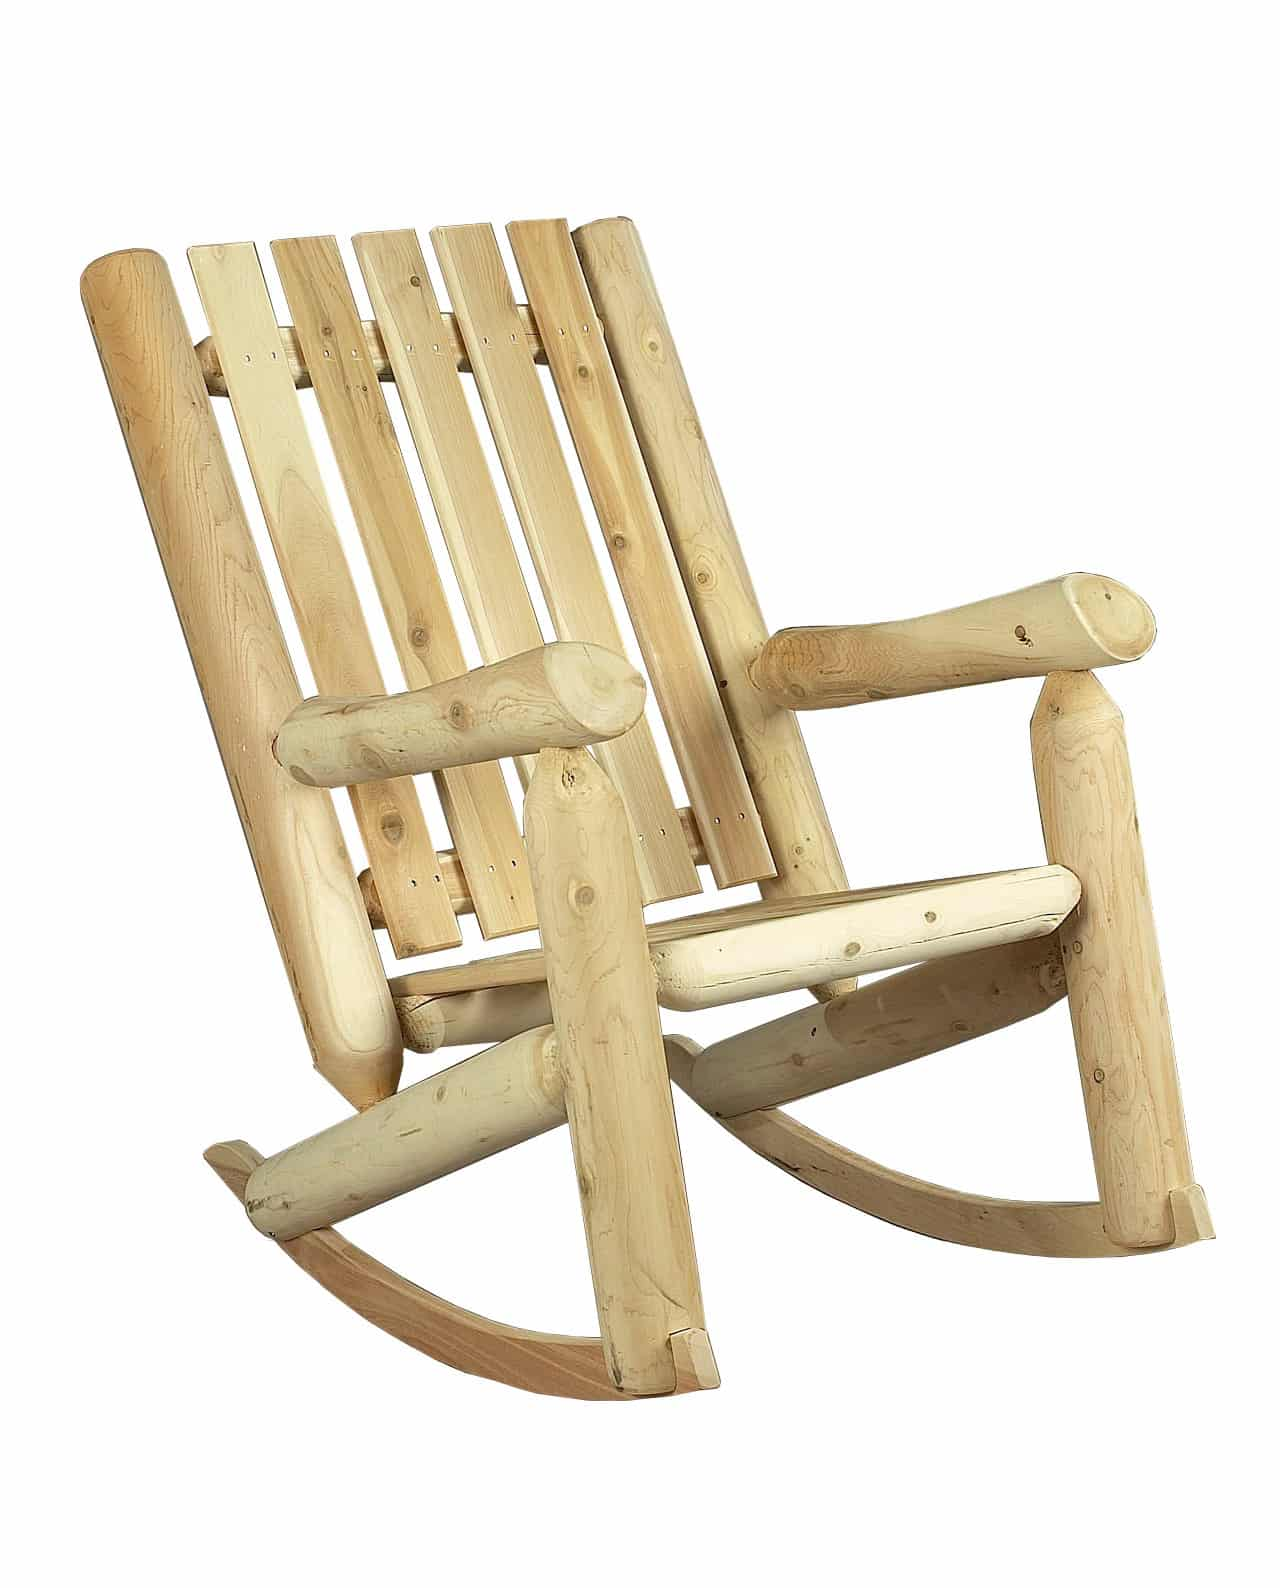 Rocking chair en bois dossier haut c dre rondins - Rocking chair confortable ...